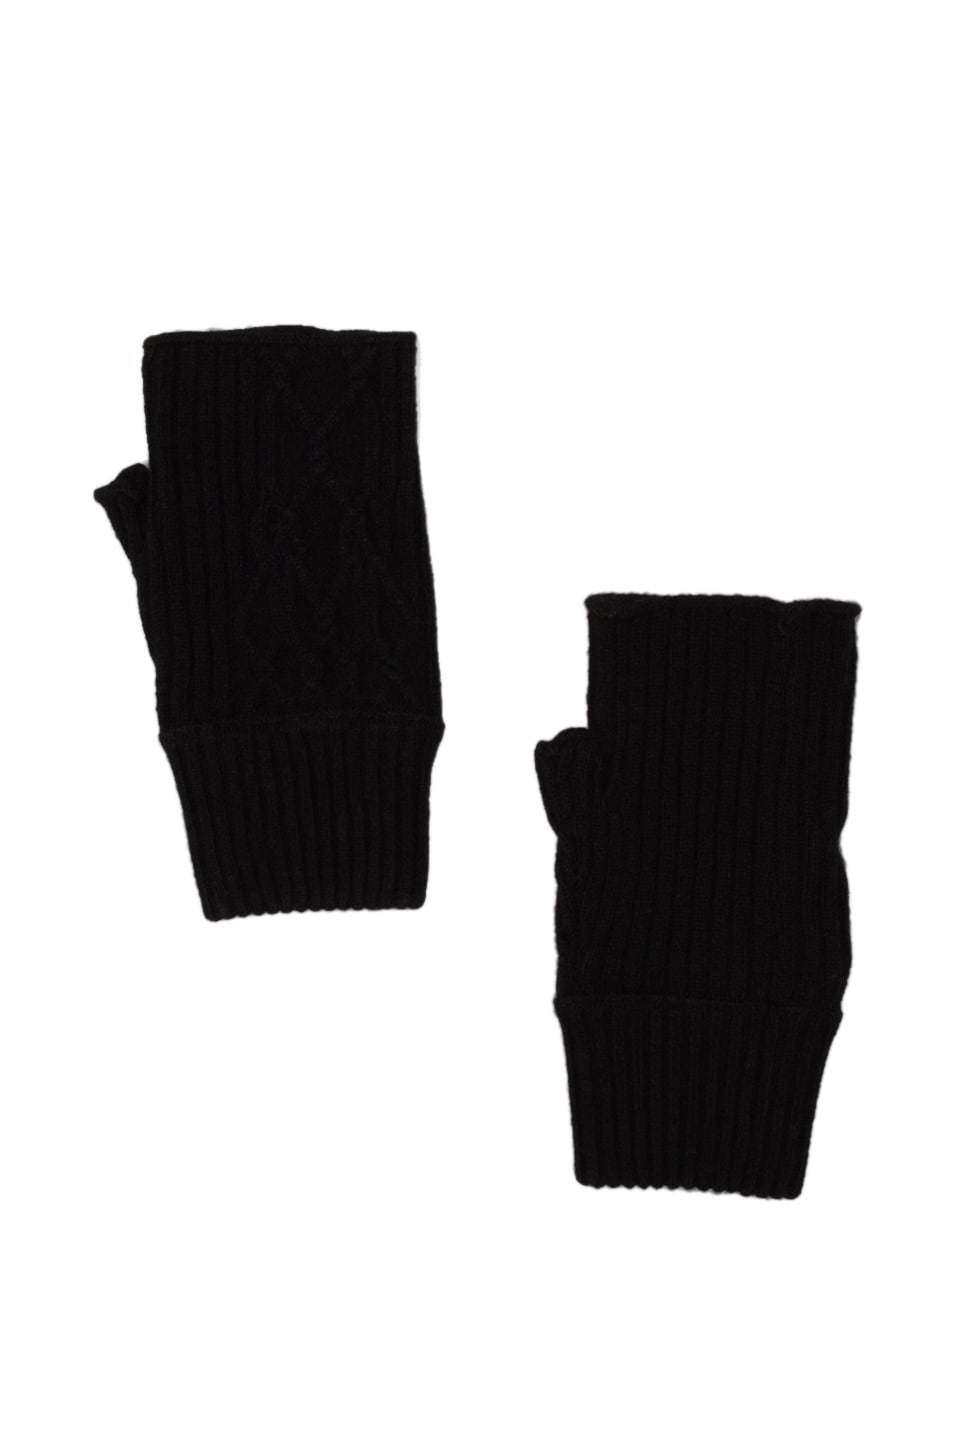 Inhabit Cashmere Gloves in Black